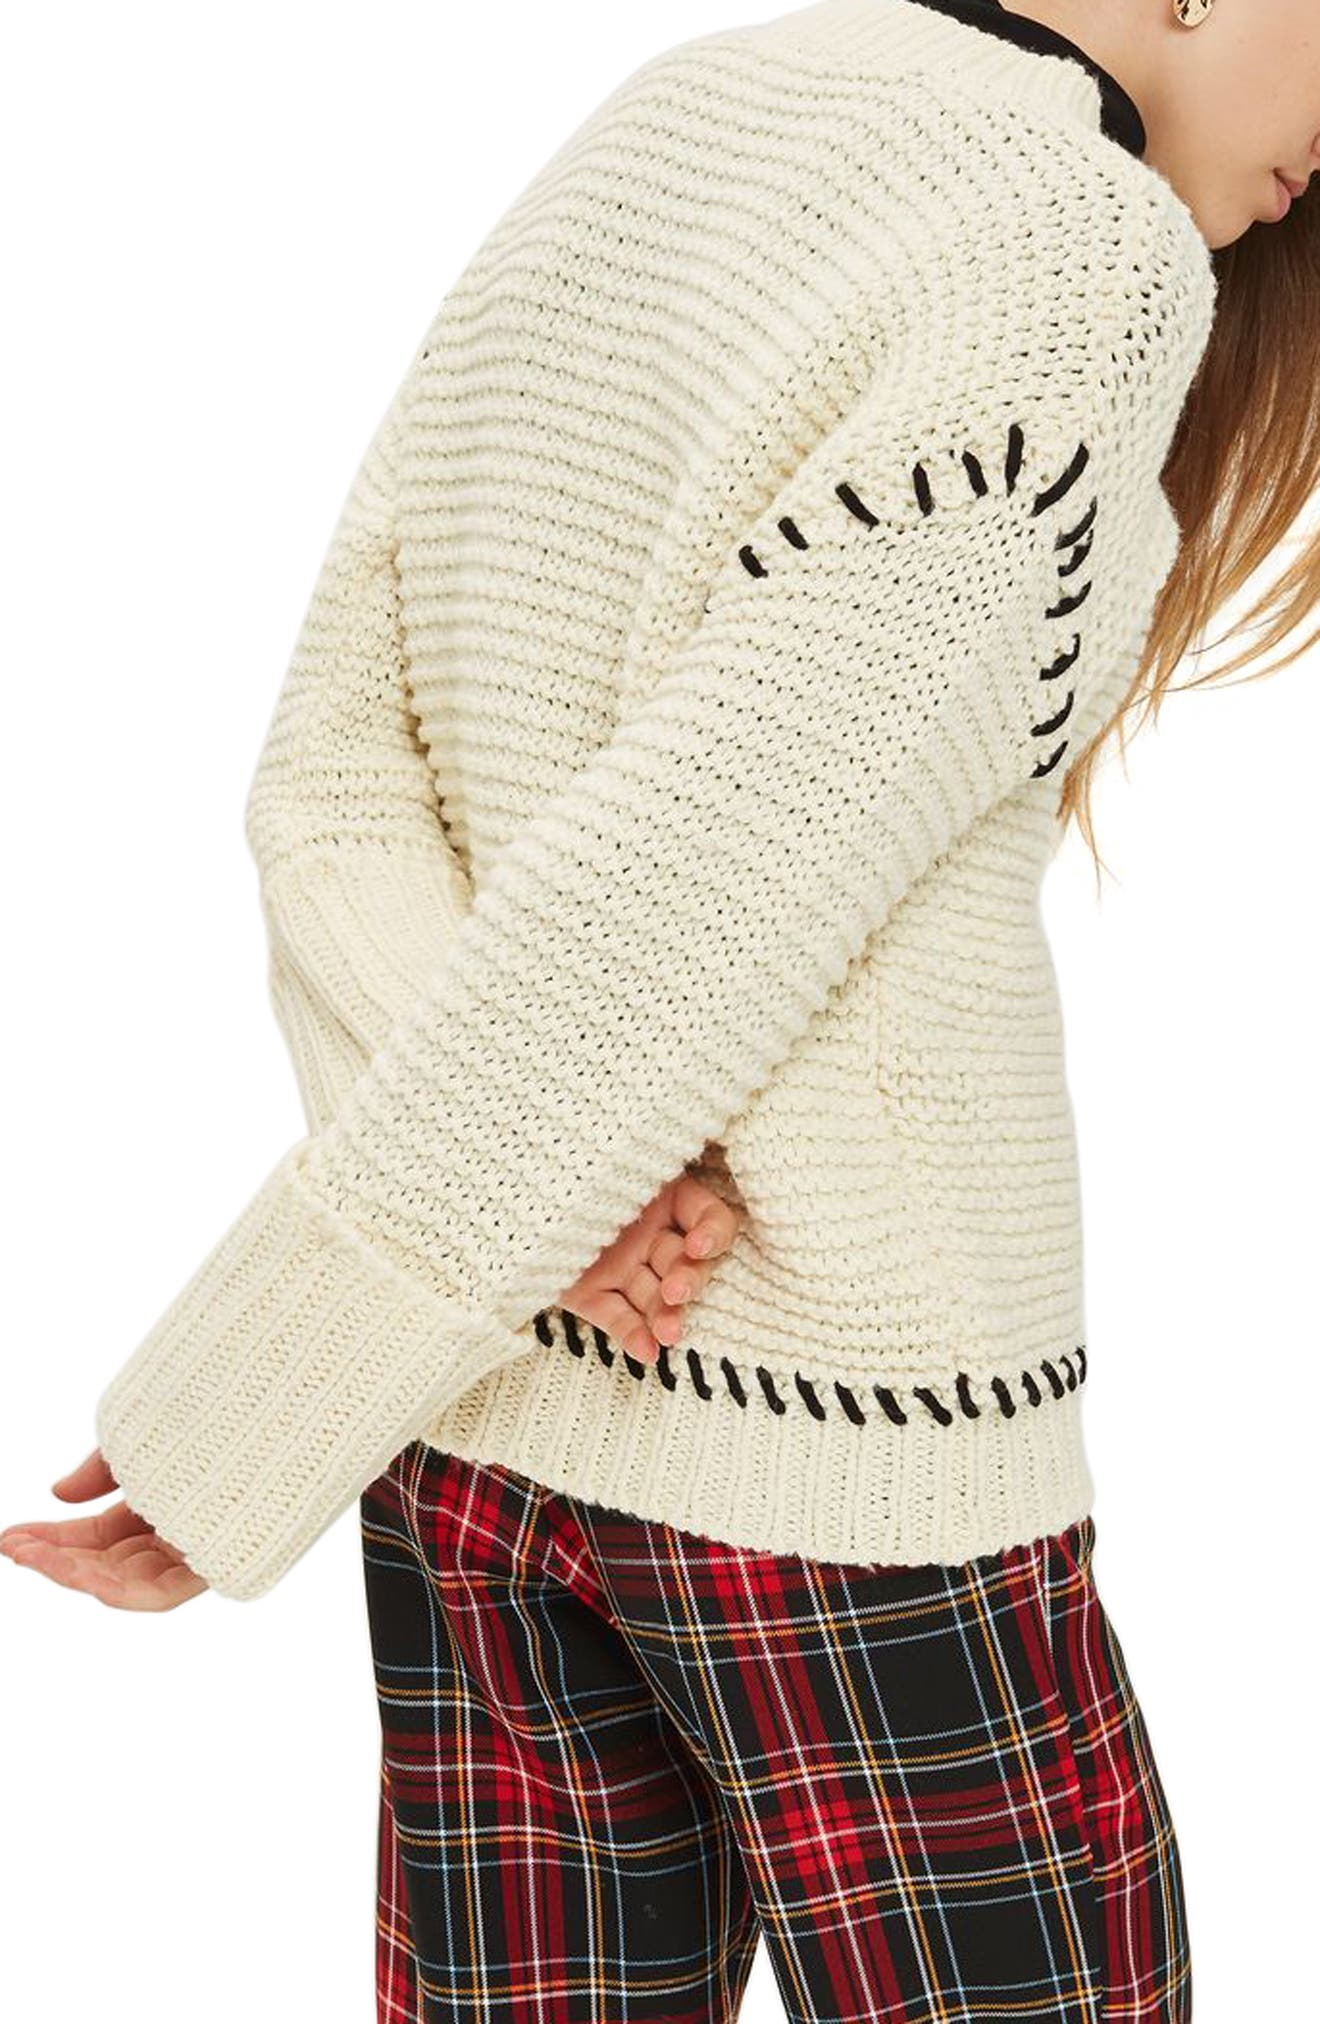 Whipstitch Sweater,                             Alternate thumbnail 2, color,                             900